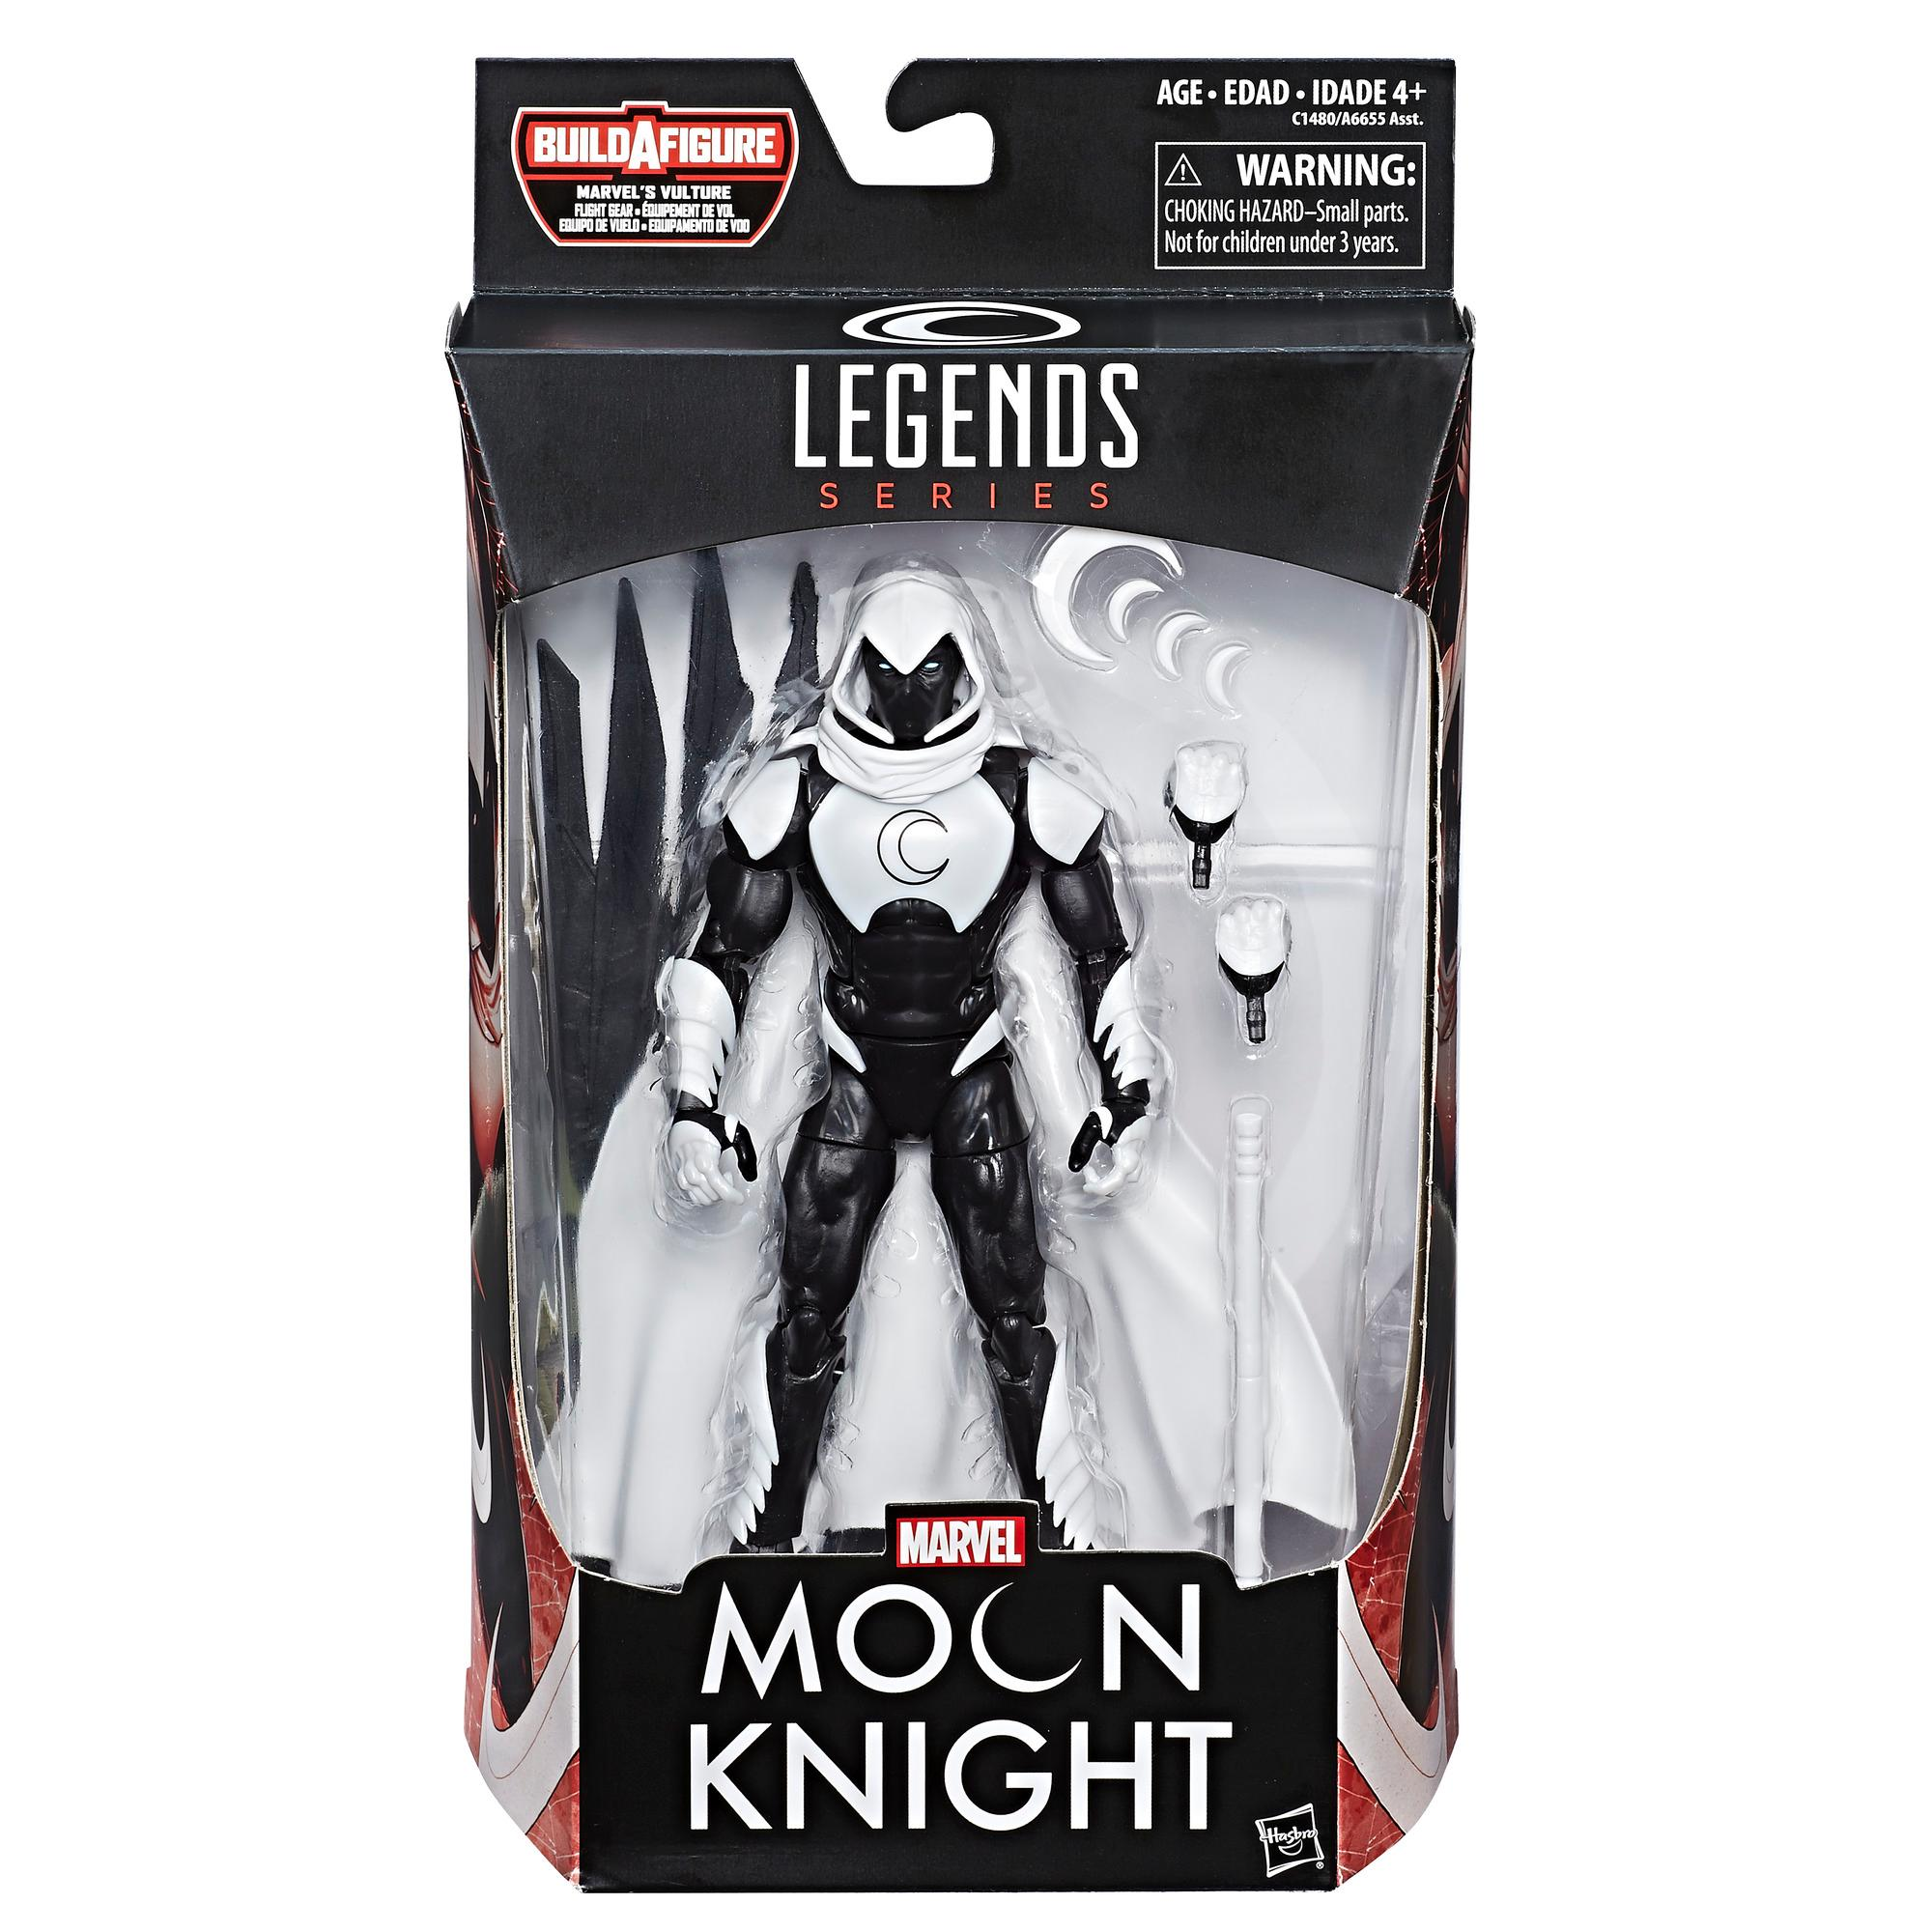 Marvel Spider-Man 6-inch Legends Series Marvel's Moon Knight